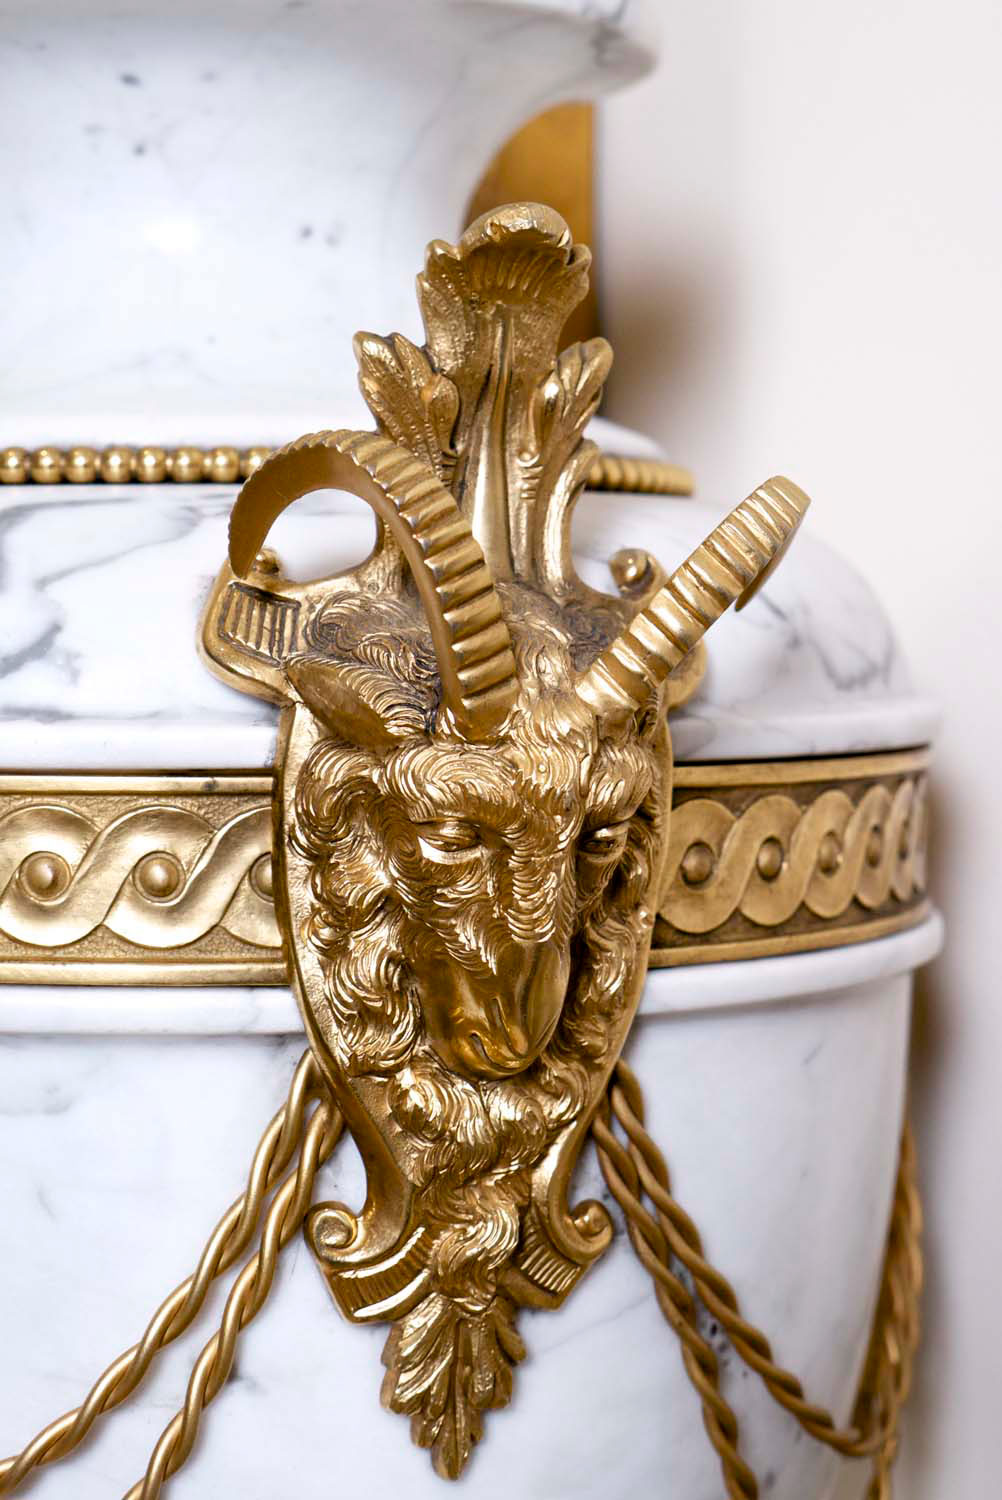 4 Gilding detail on french décor urn with deocrative motif positoned in hall way